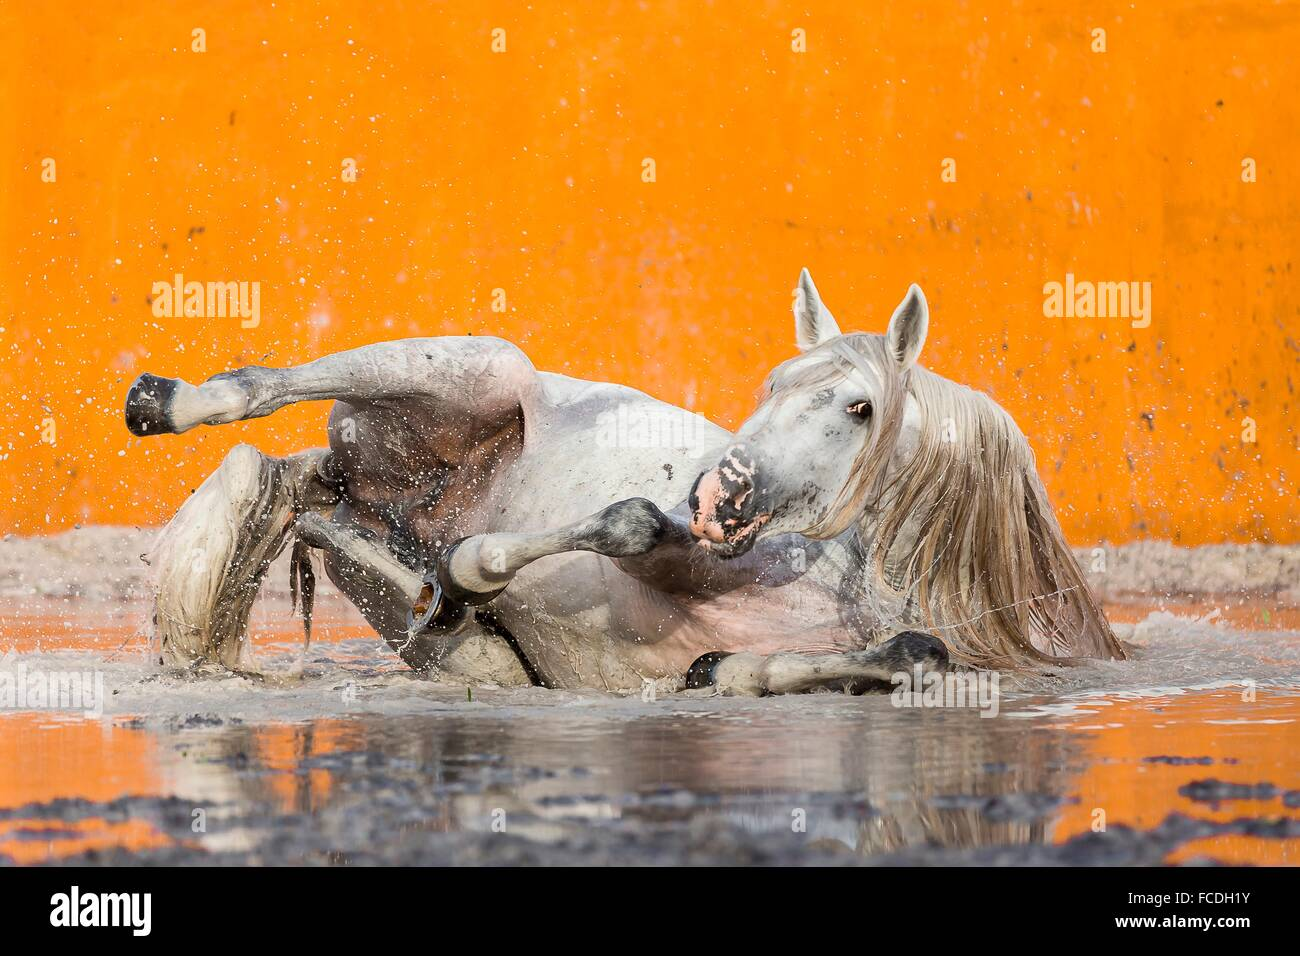 Lusitano. Gray stallion wallowing in a flooded bullfighting arena. Portugal - Stock Image